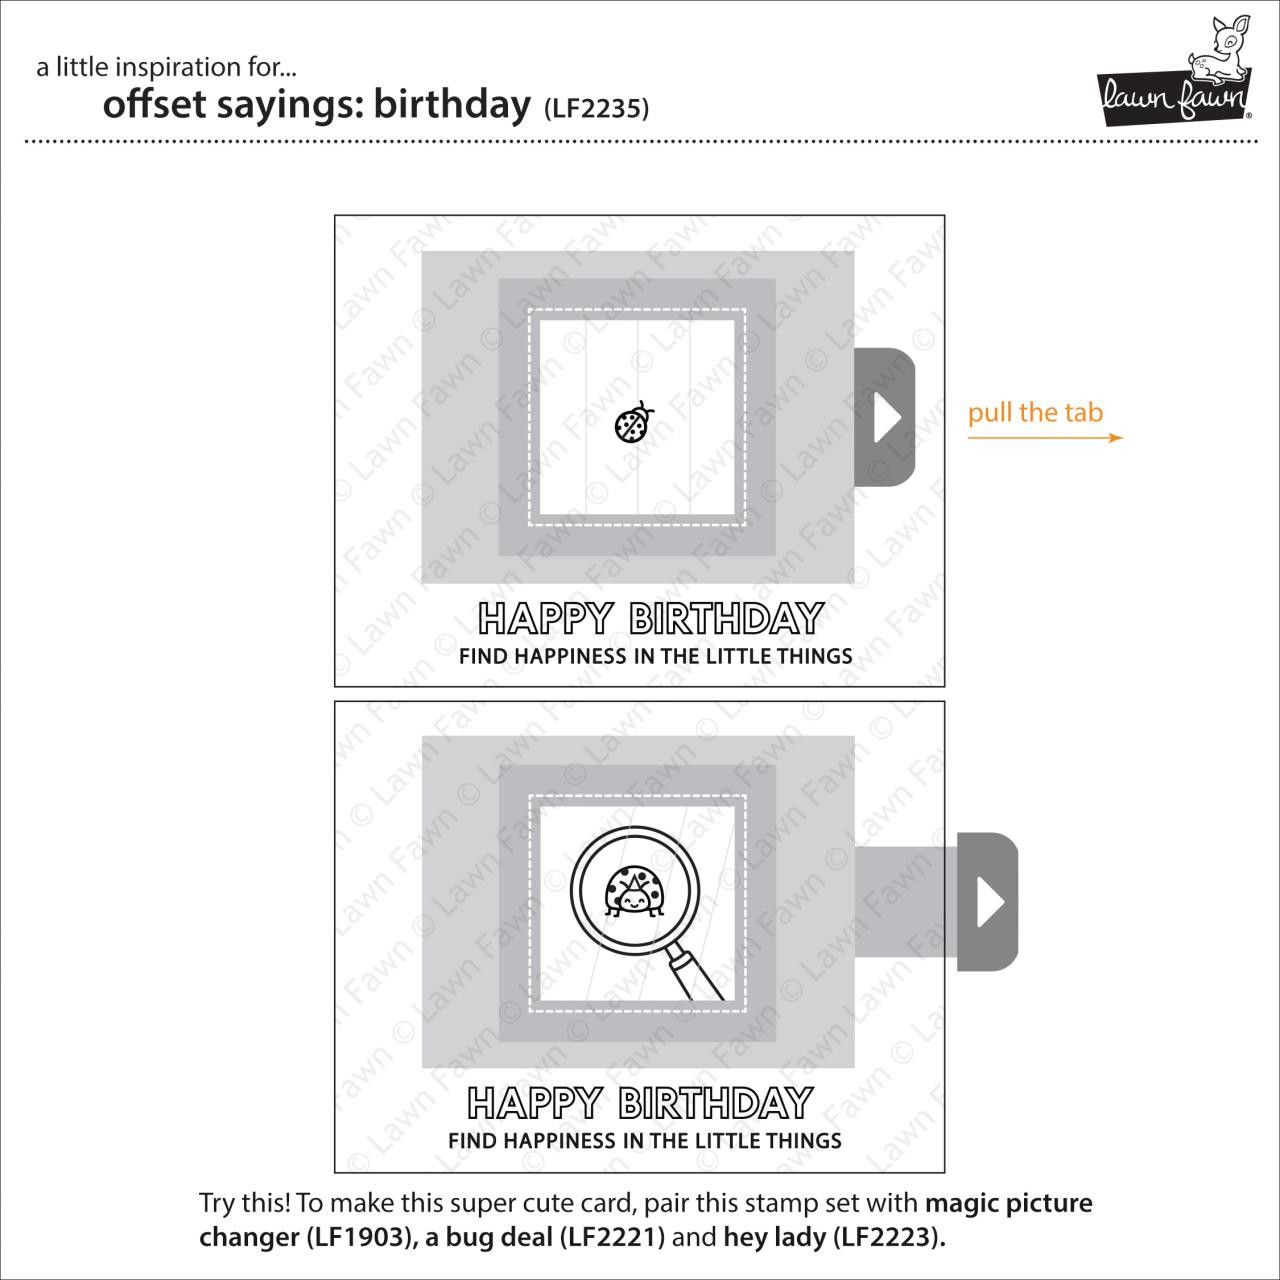 (PREORDER) Offset Sayings: Birthday, Lawn Fawn Clear Stamps - 035292674745